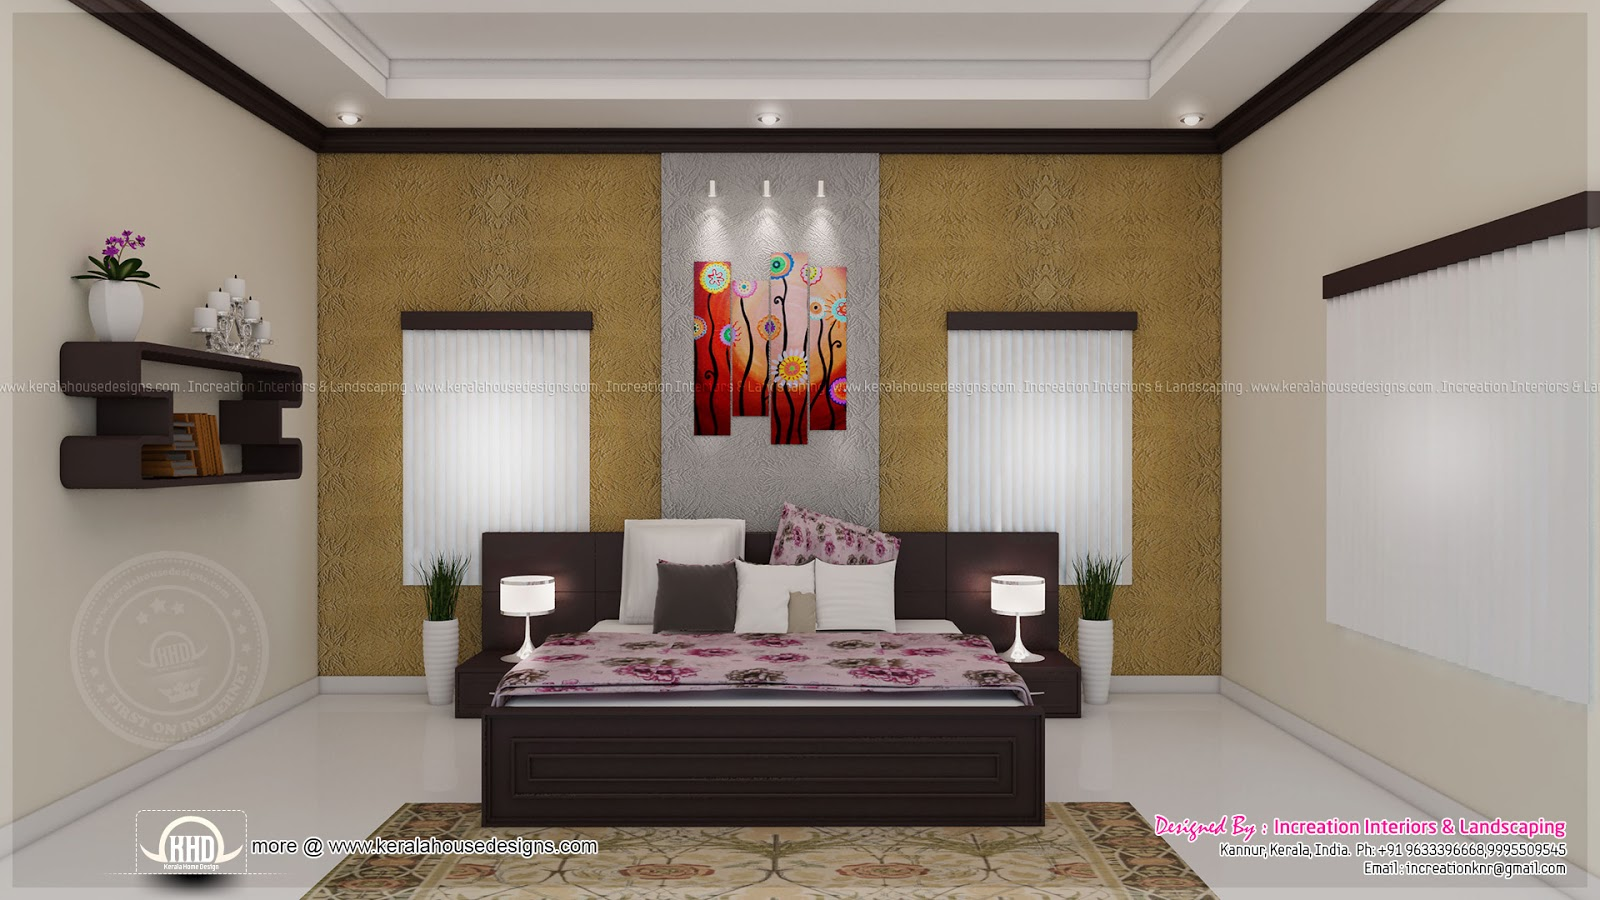 House interior ideas in 3d rendering kerala home design for Home interior images